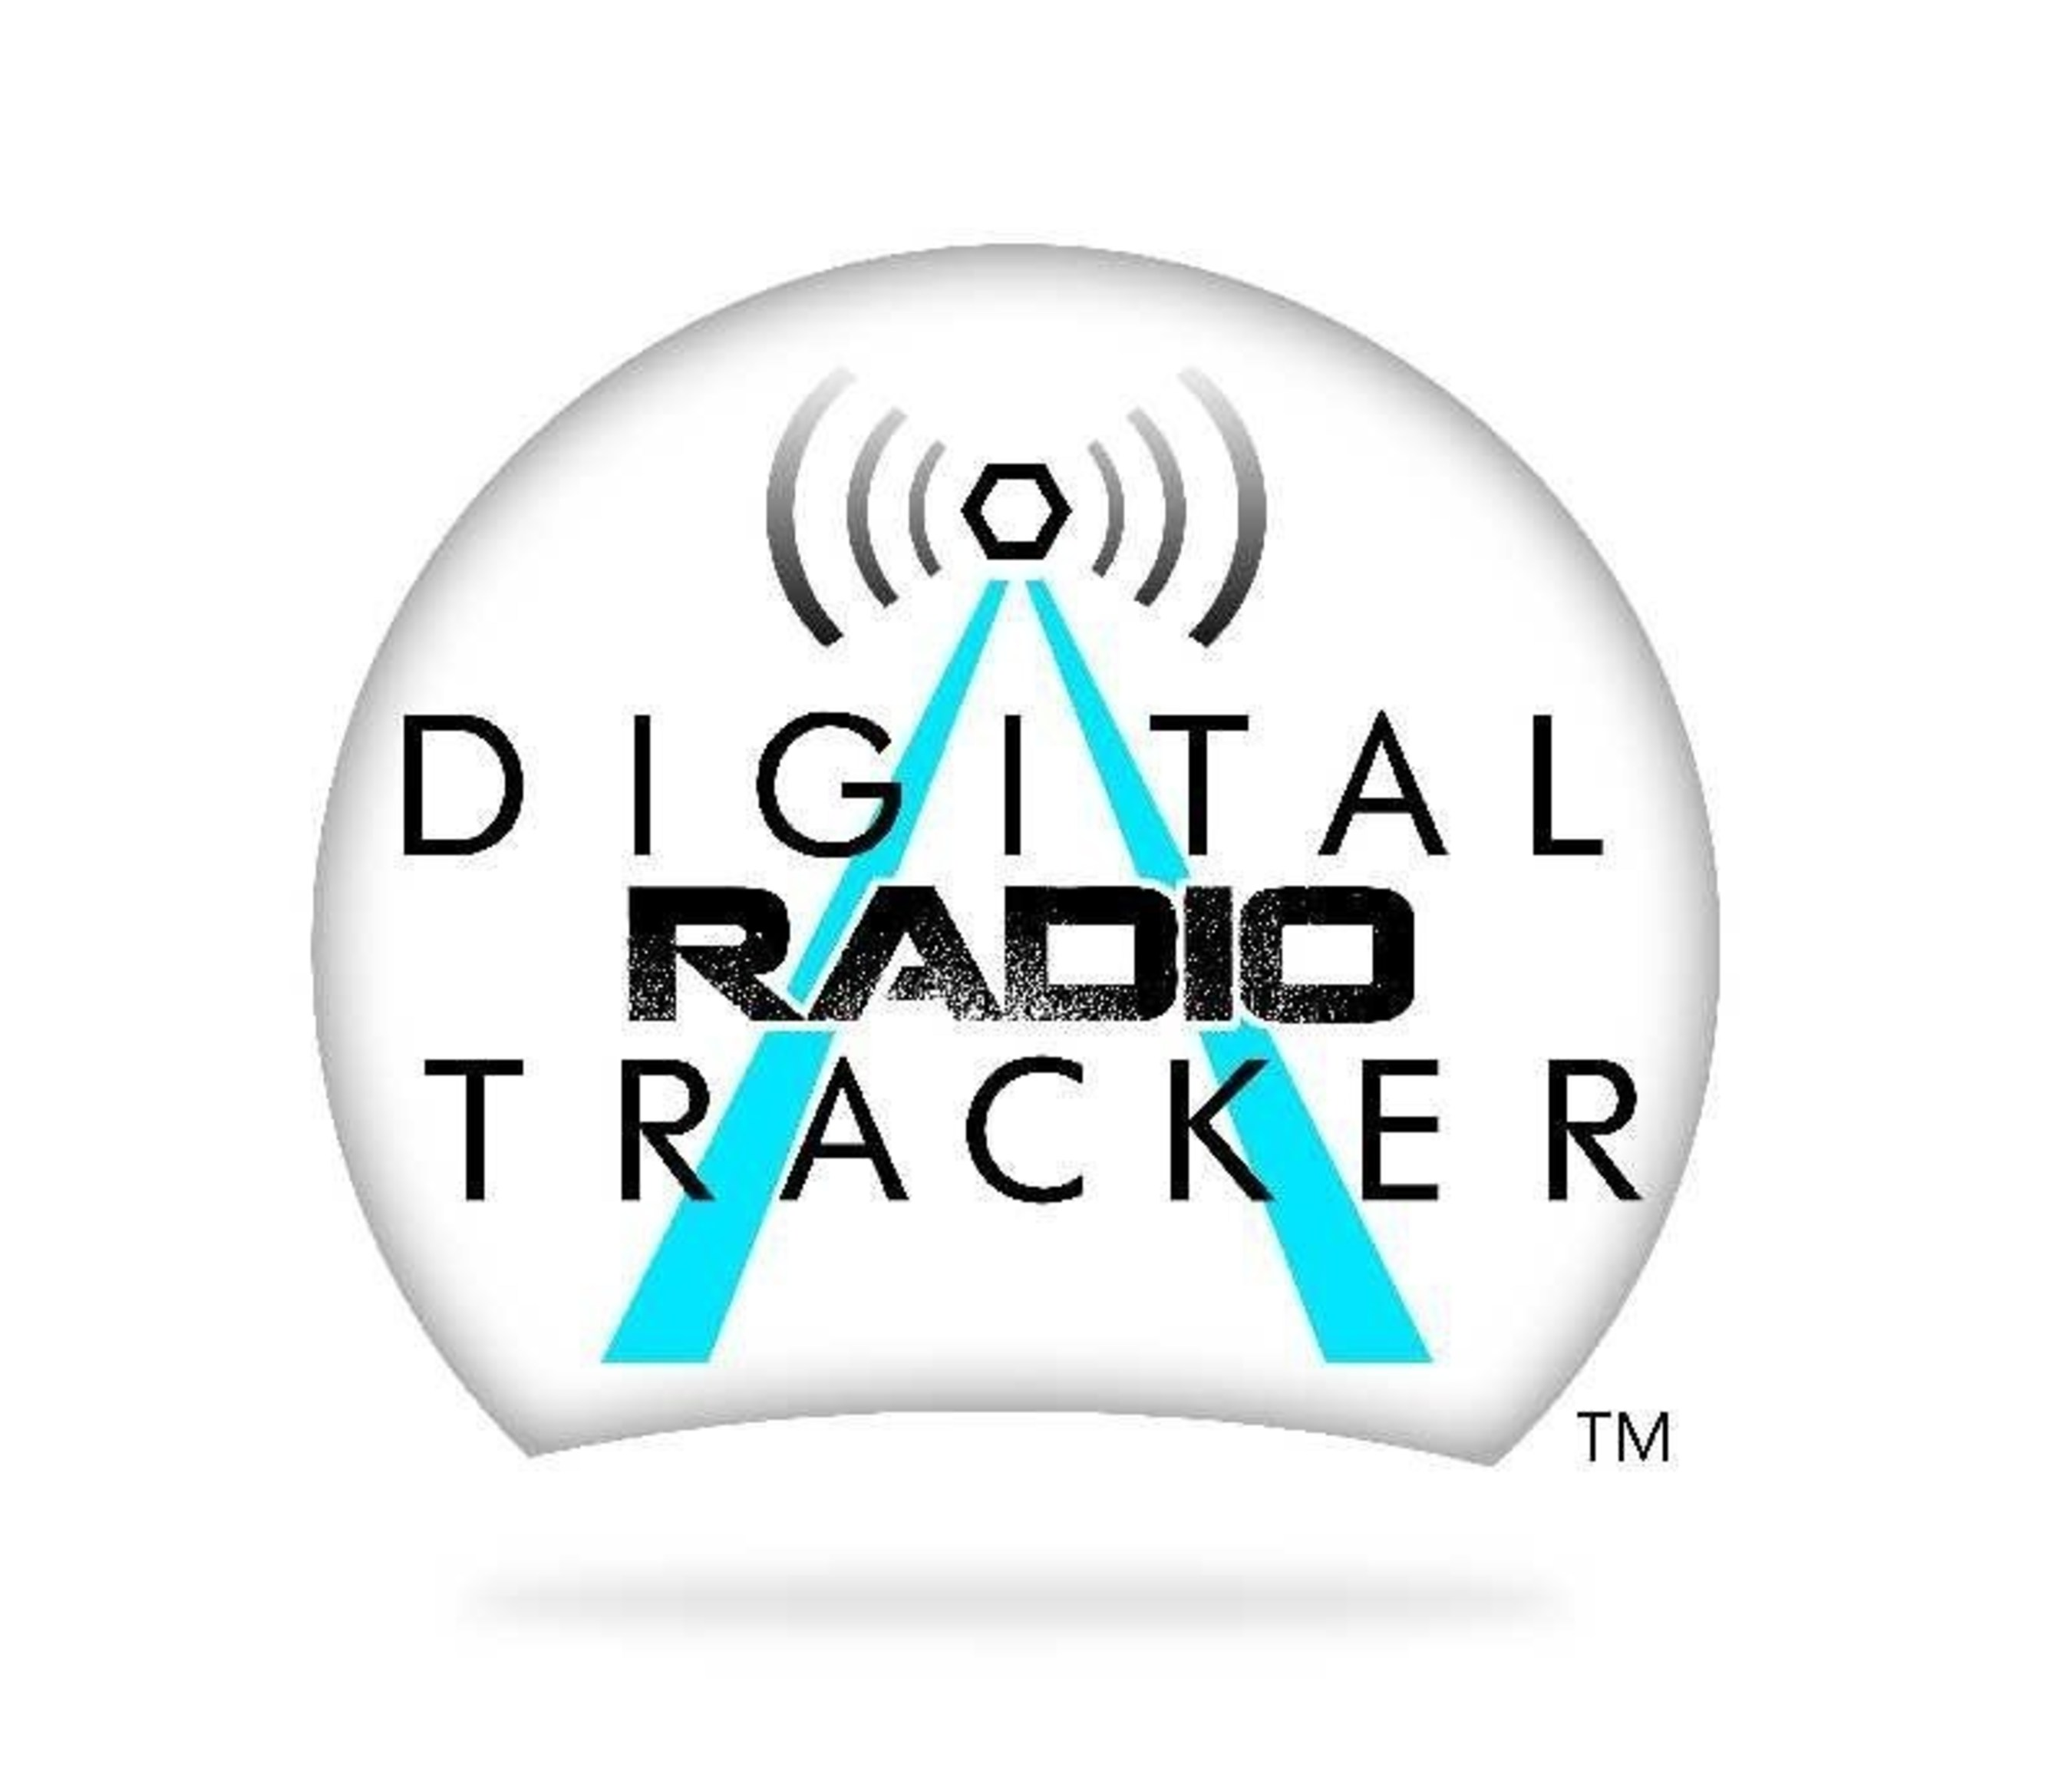 DigitalRadioTracker.com Simplifies Broadcast Monitoring Worldwide